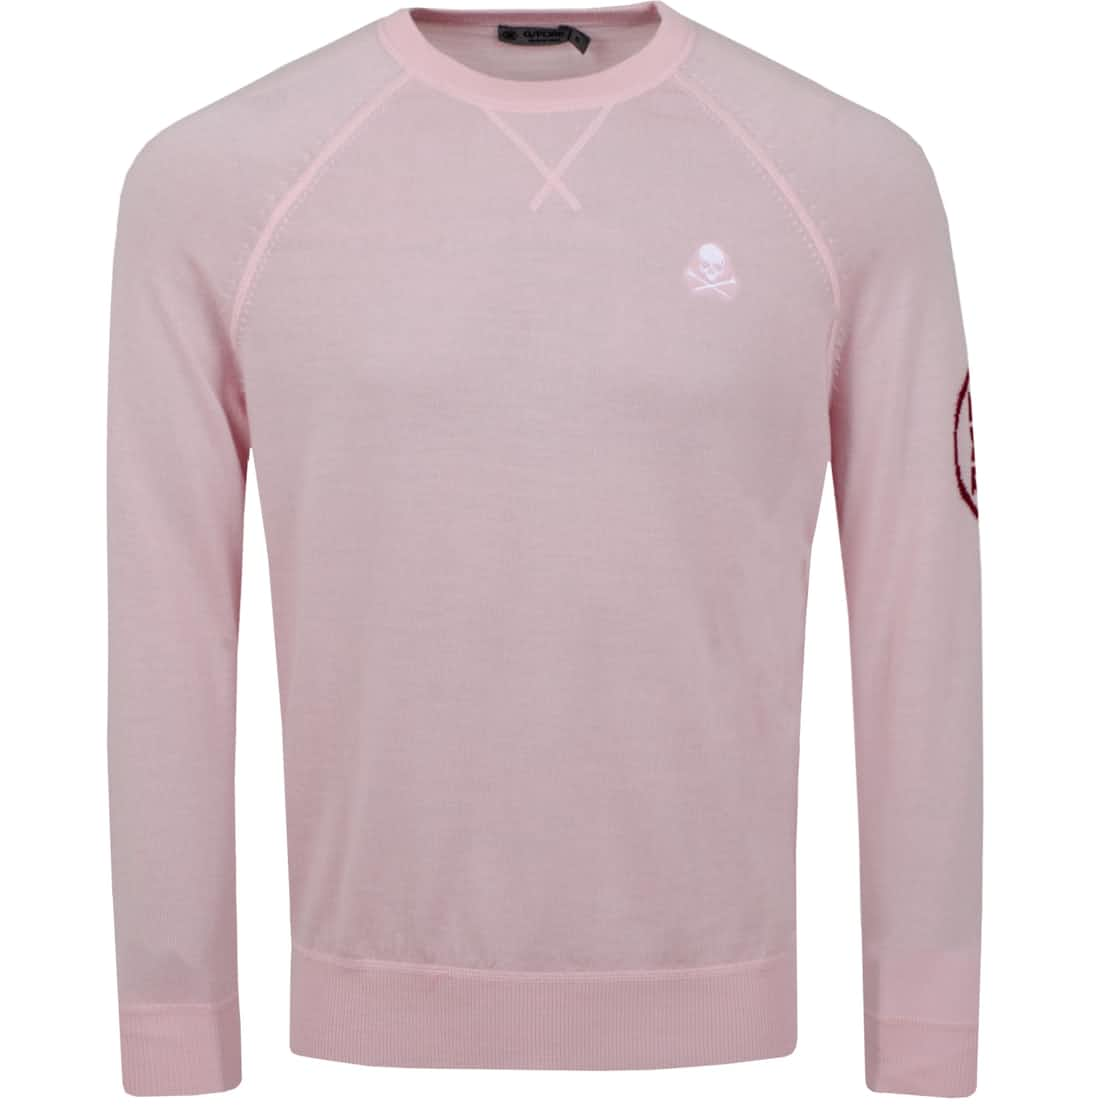 x TRENDYGOLF Skull Crewneck Sweater Rose Quartz - AW20